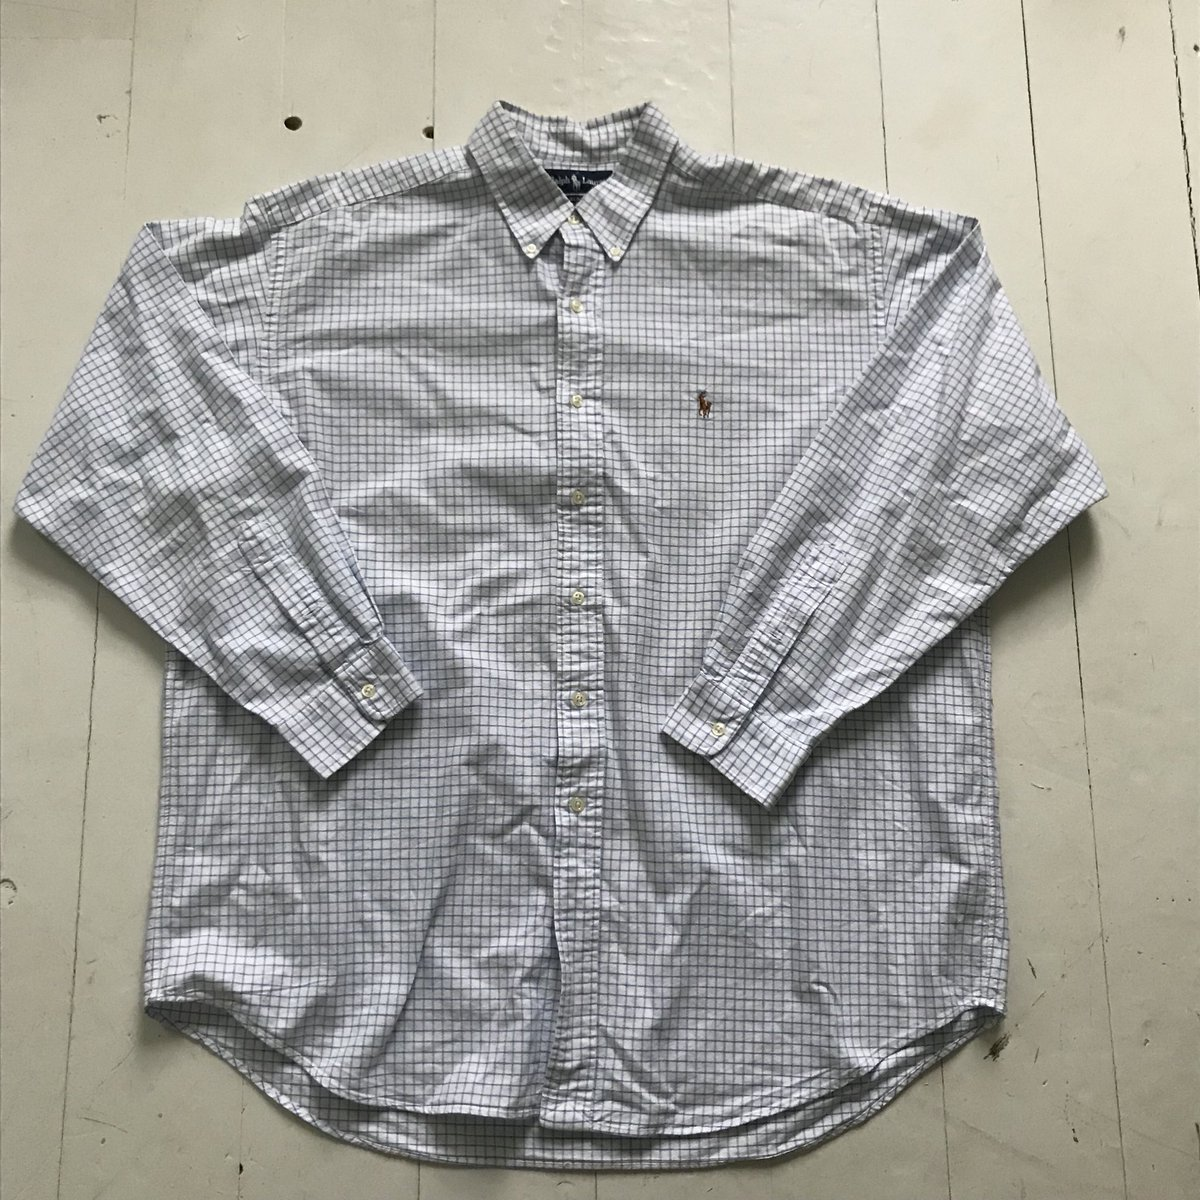 Chequered Ralph Lauren Shirt   Size - XL   Condition - 9/10   Price - £25  #RalphLauren #RalphLaurenShirts #Ralph #Lauren #Shirt #Shirts #RalphLaurenShirt #Chequered #Outerwear #Menswear #Vintage #Retro #Streetwear #Apex<br>http://pic.twitter.com/MWl6FVNJq5